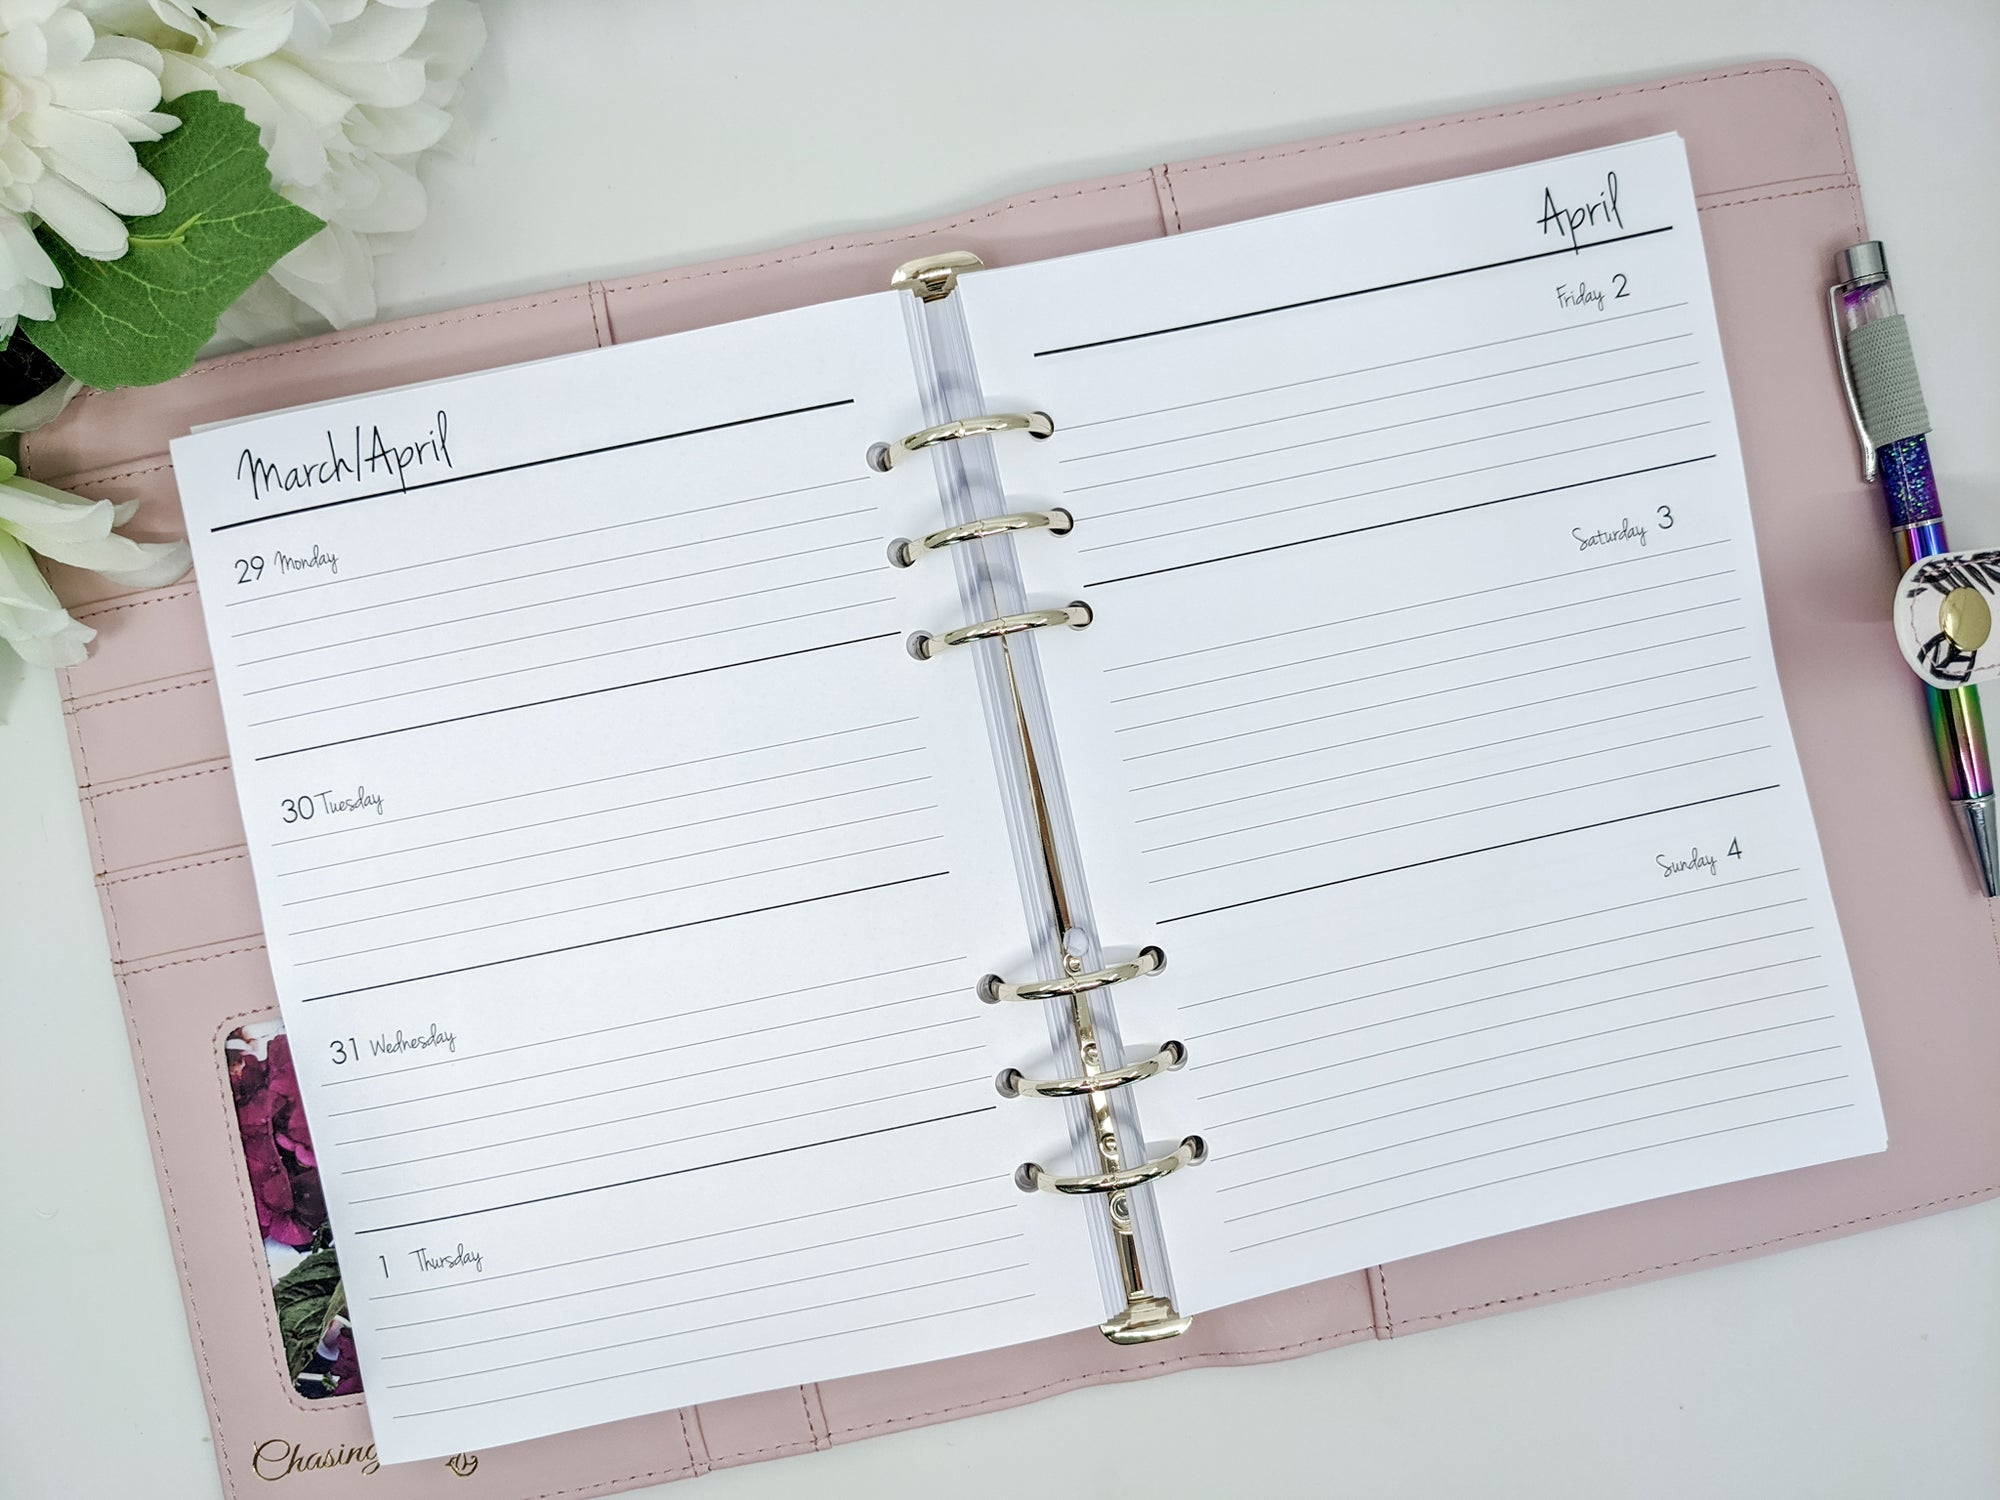 A5 Horizontal Weekly Planner Inserts with Extra Weekend Space | Lined or Unlined